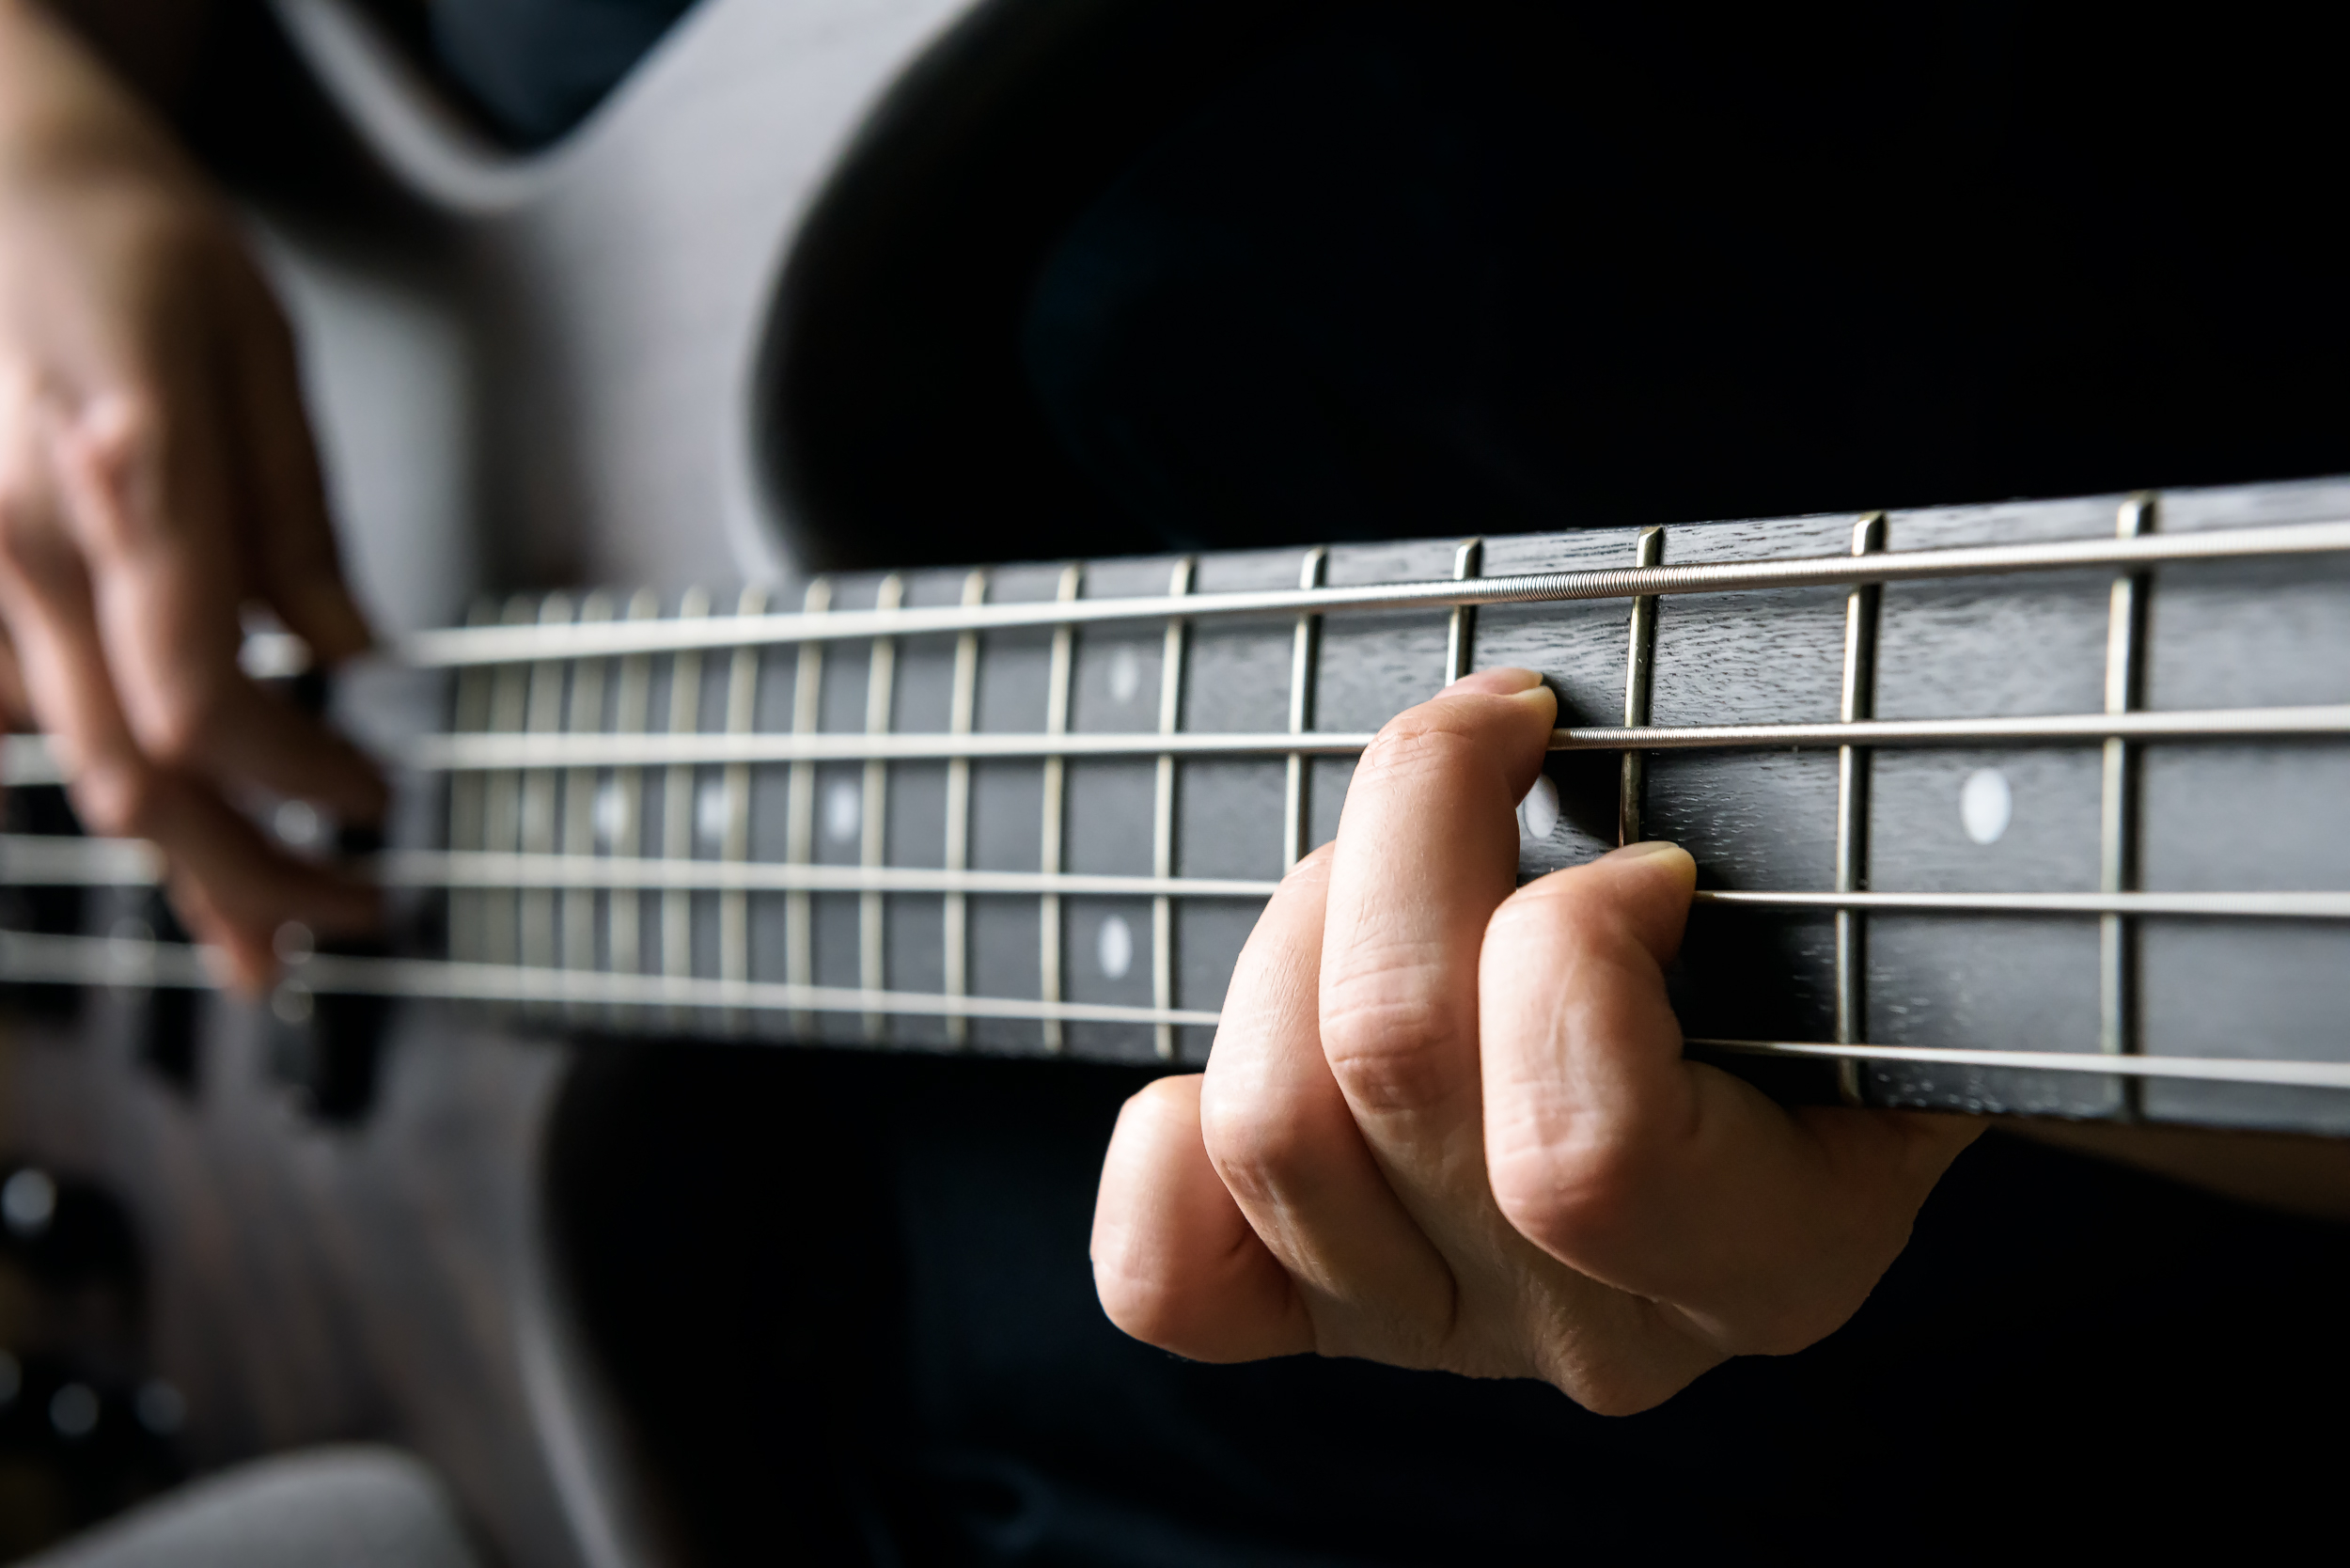 Student learning how to play bass guitar